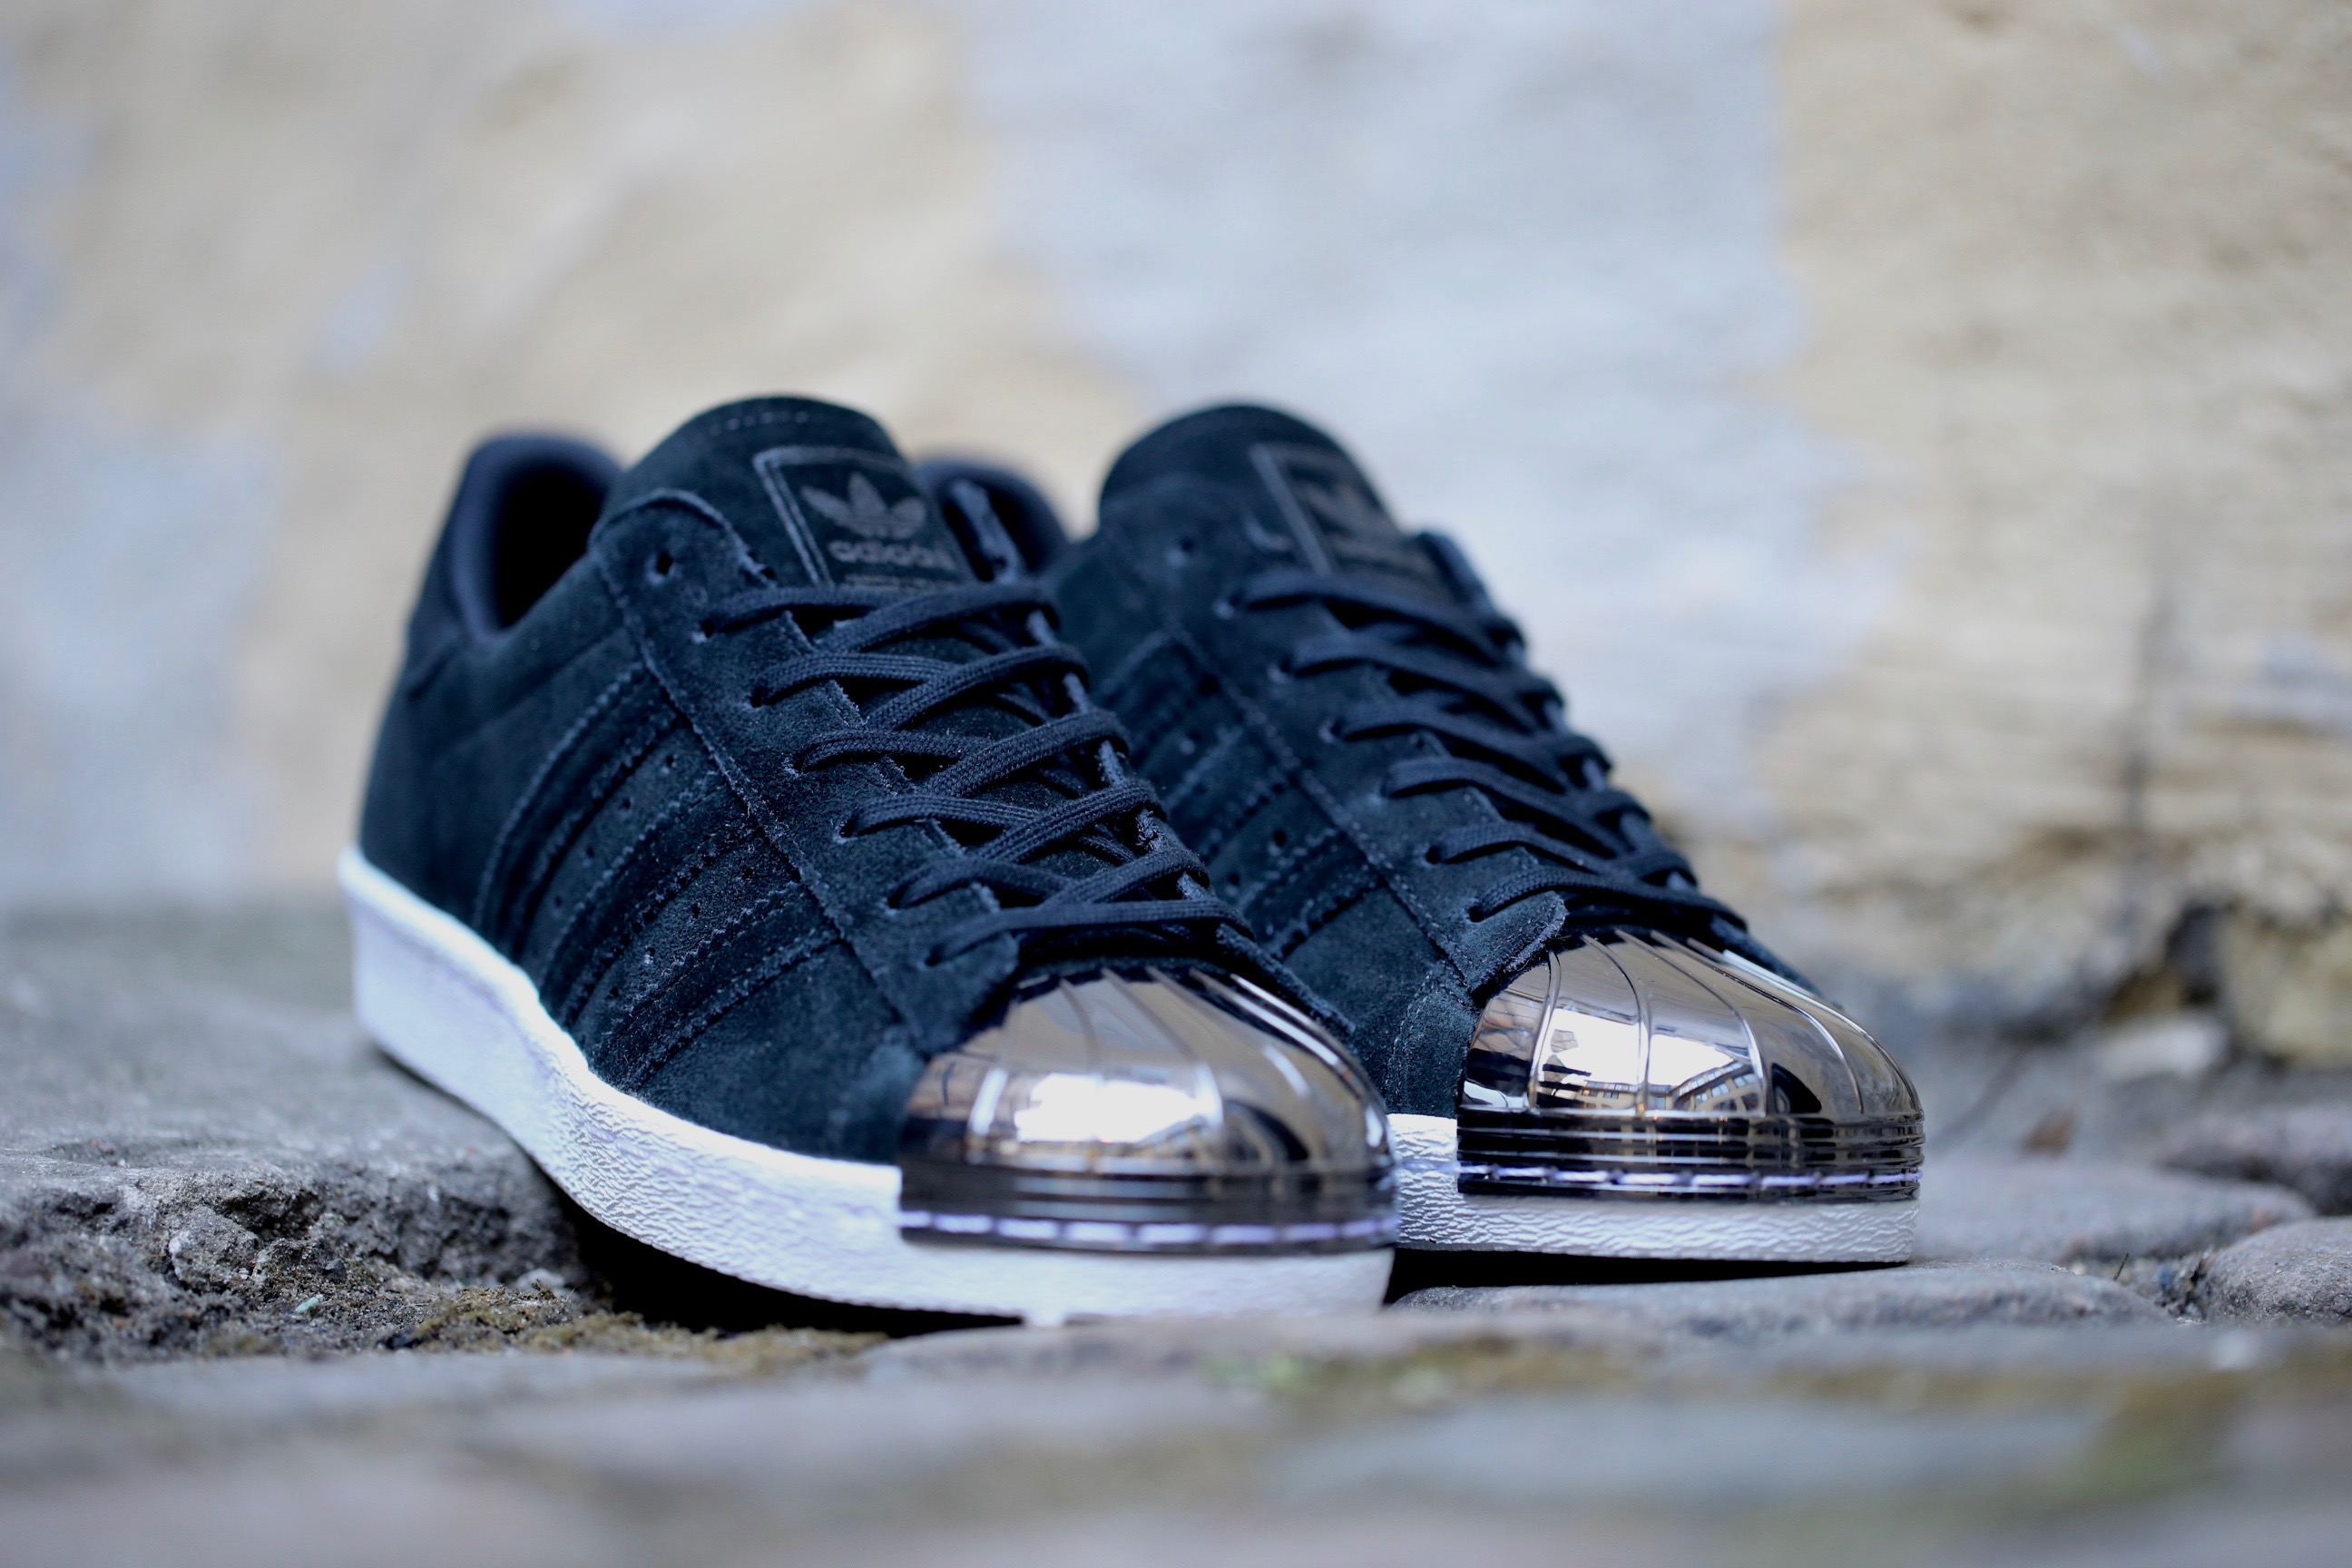 adidas superstar black metal toe